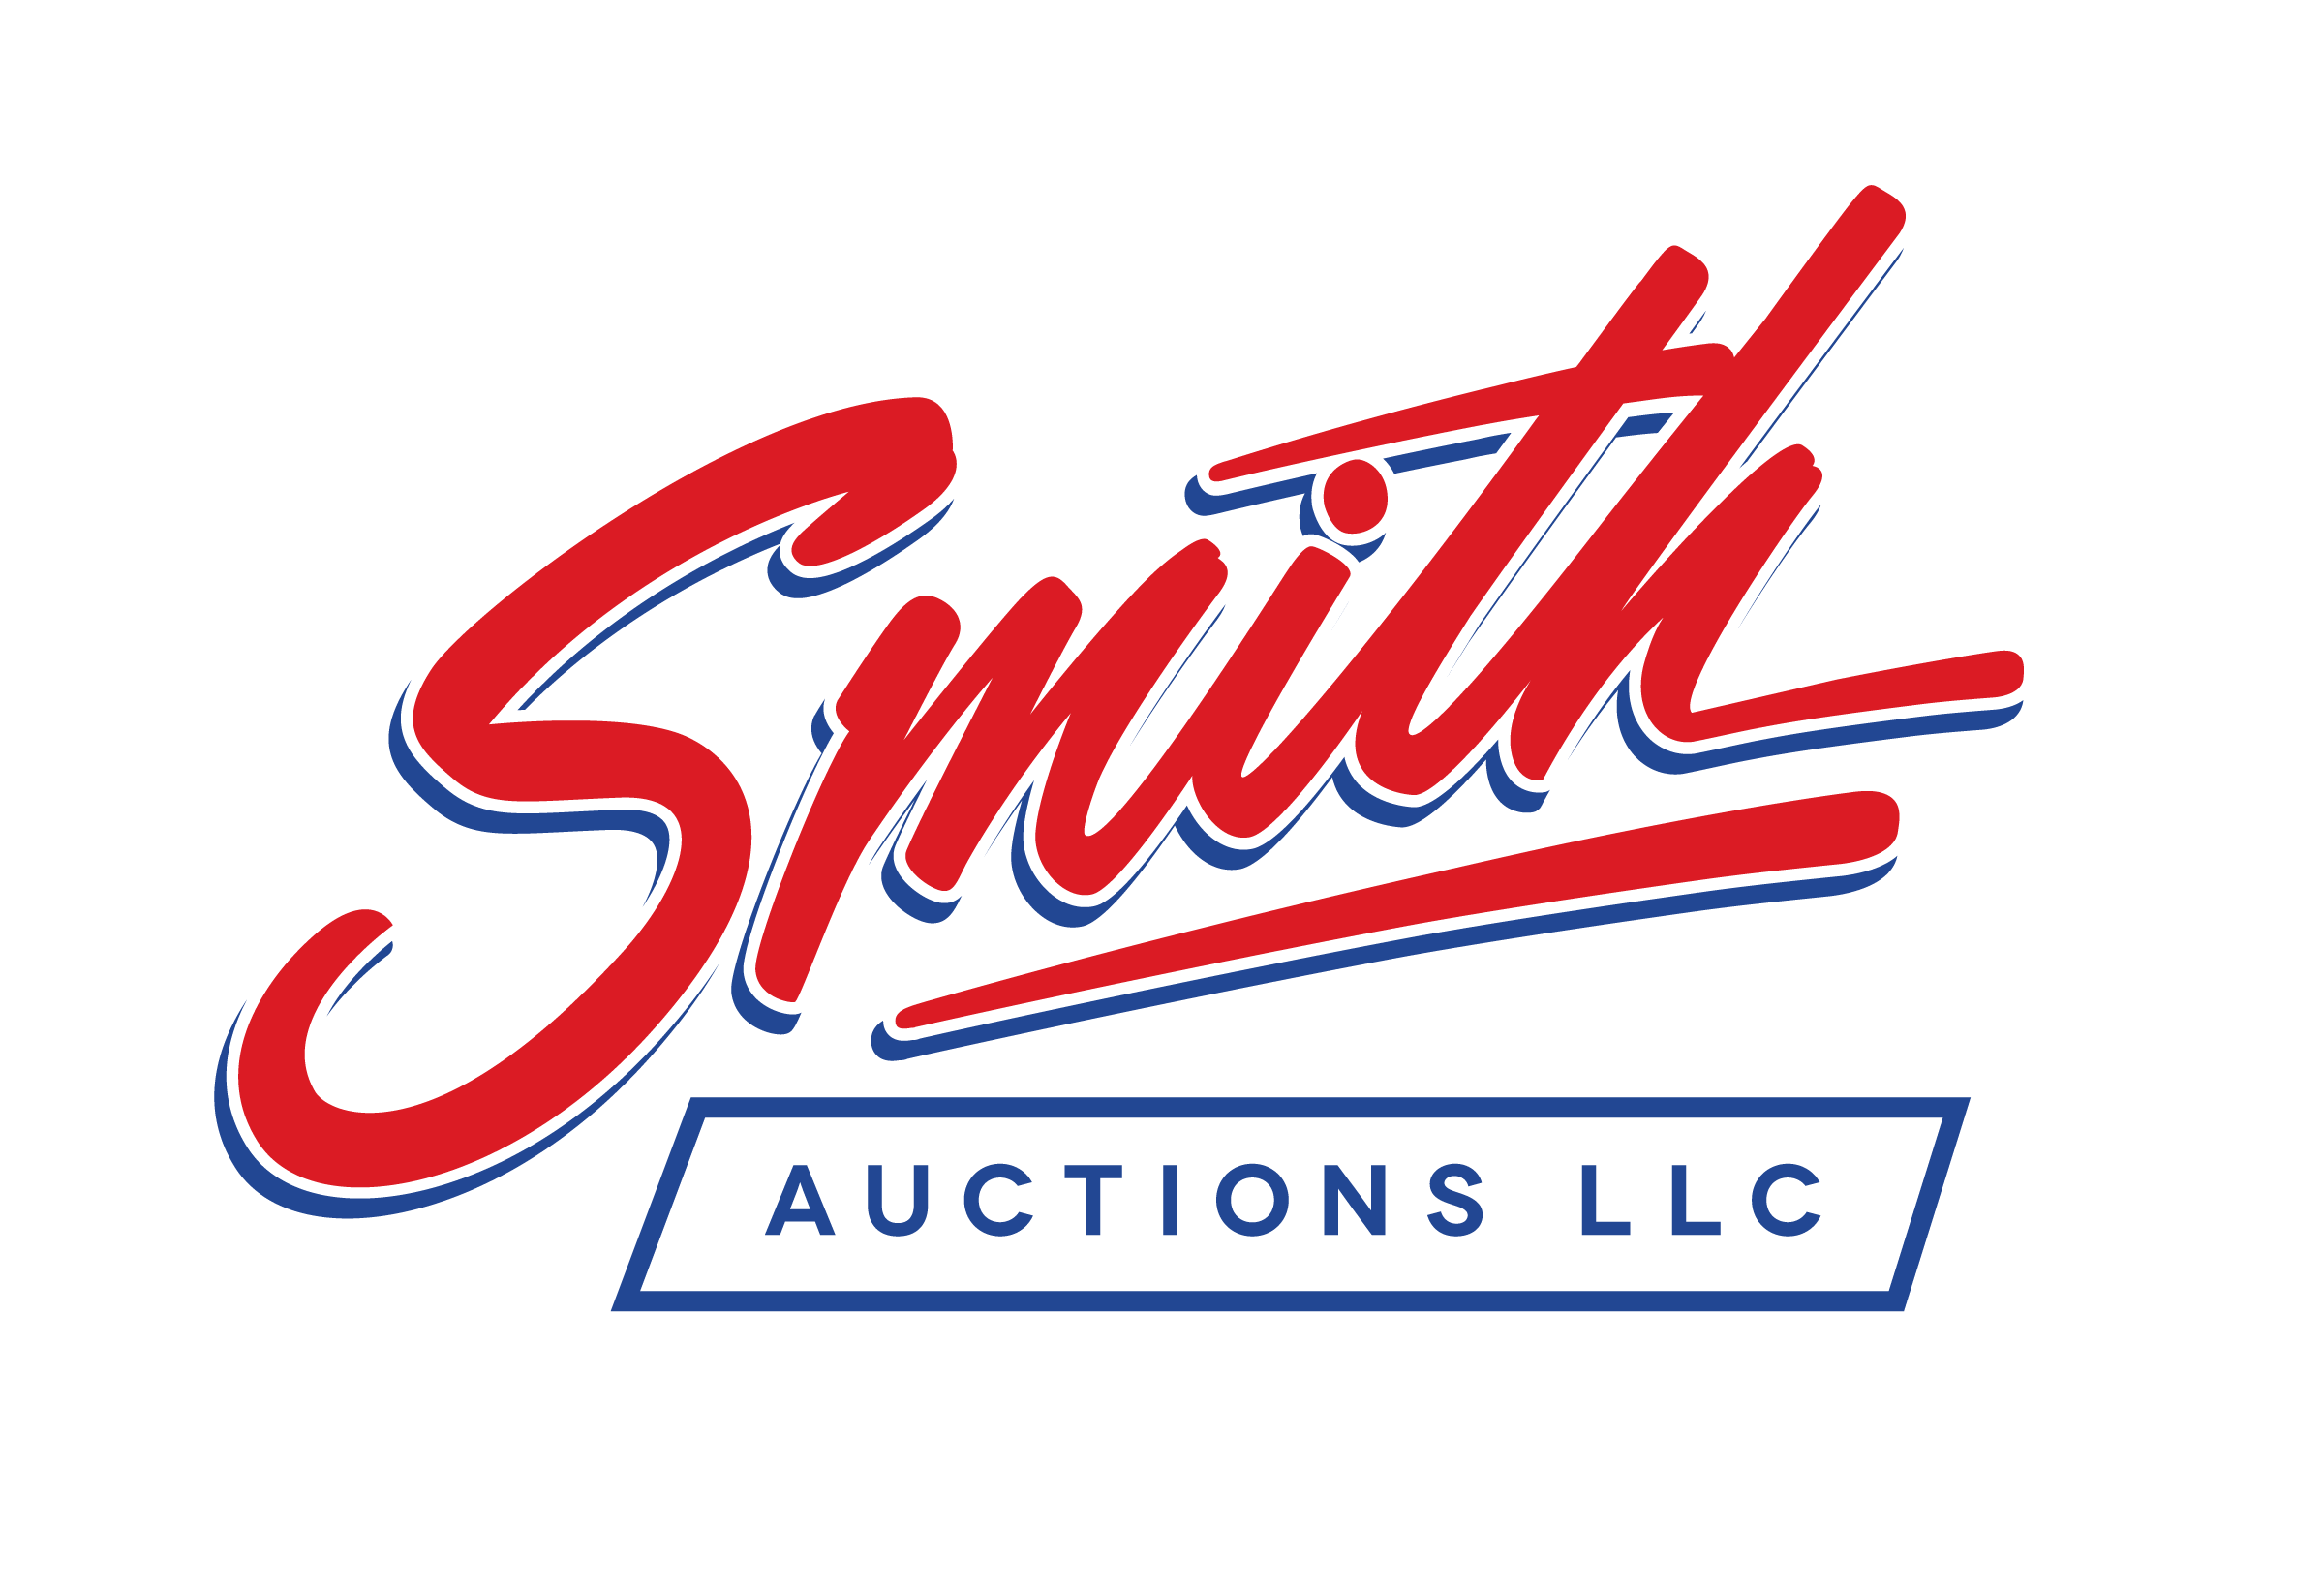 smiths auctions llc